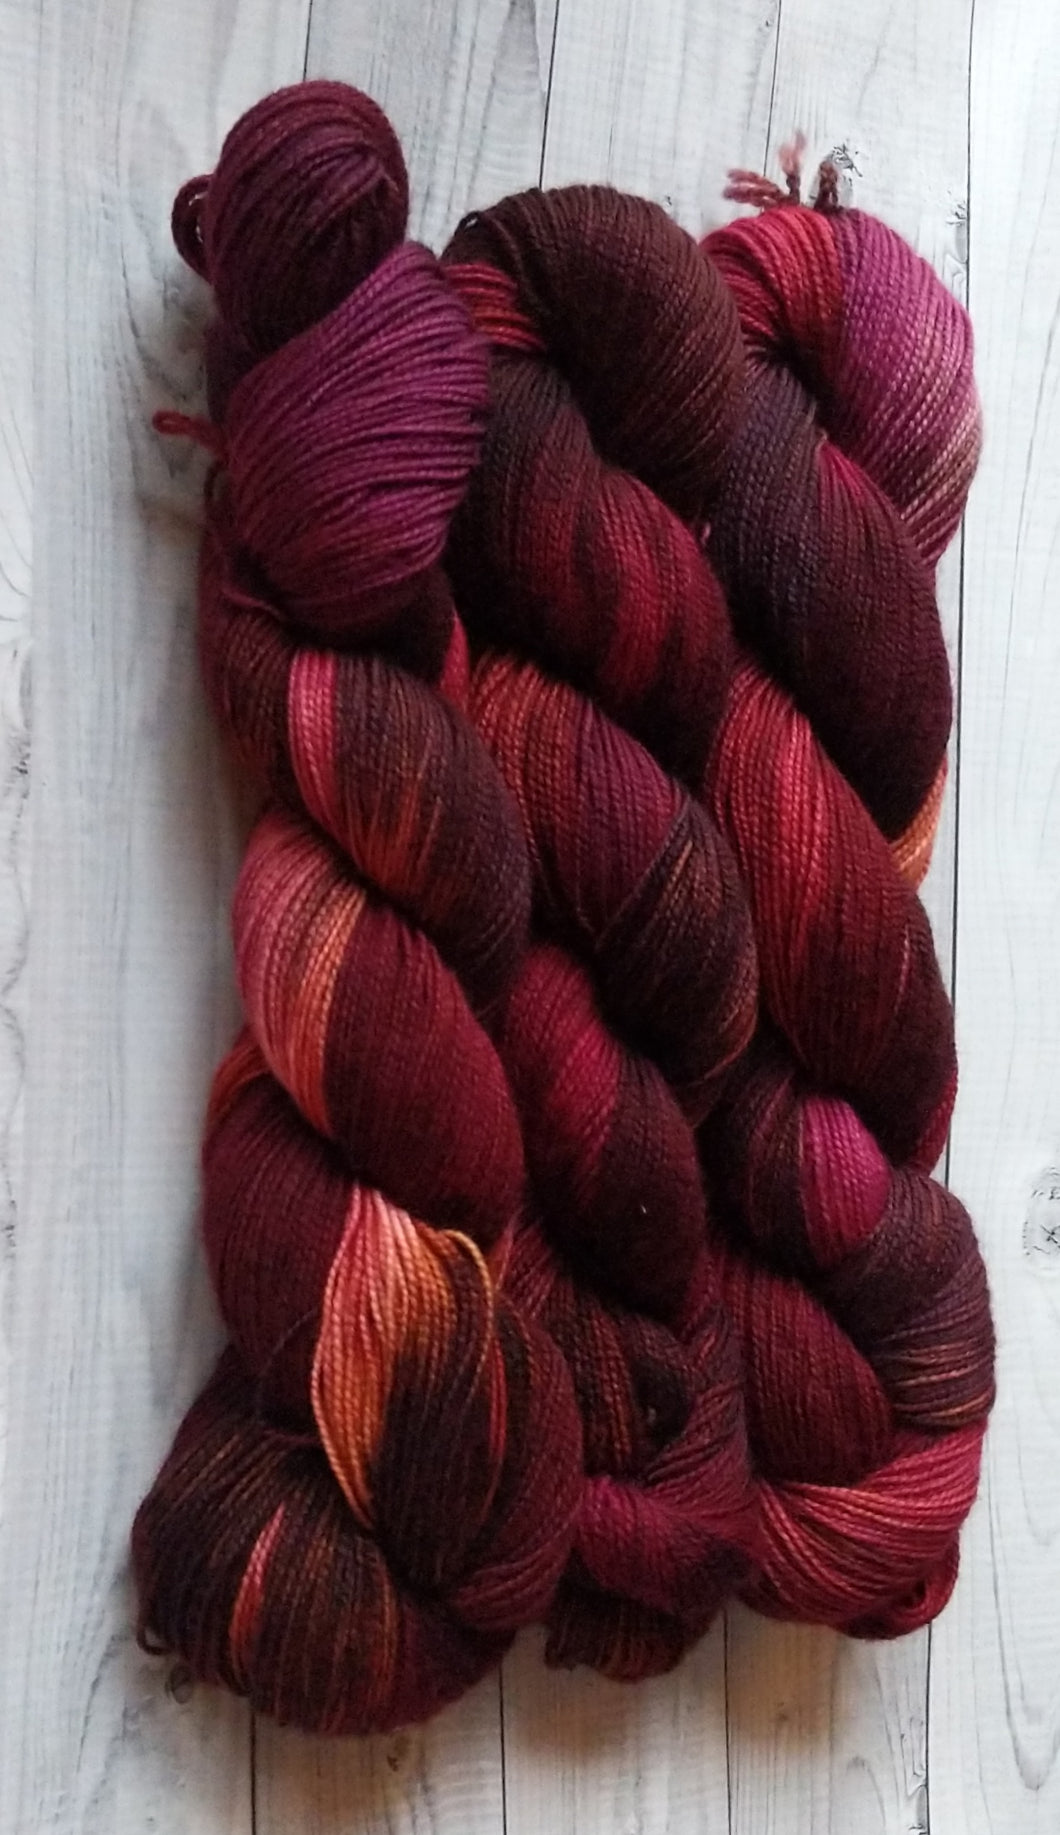 Oregon Sunstone, BFL High Twist